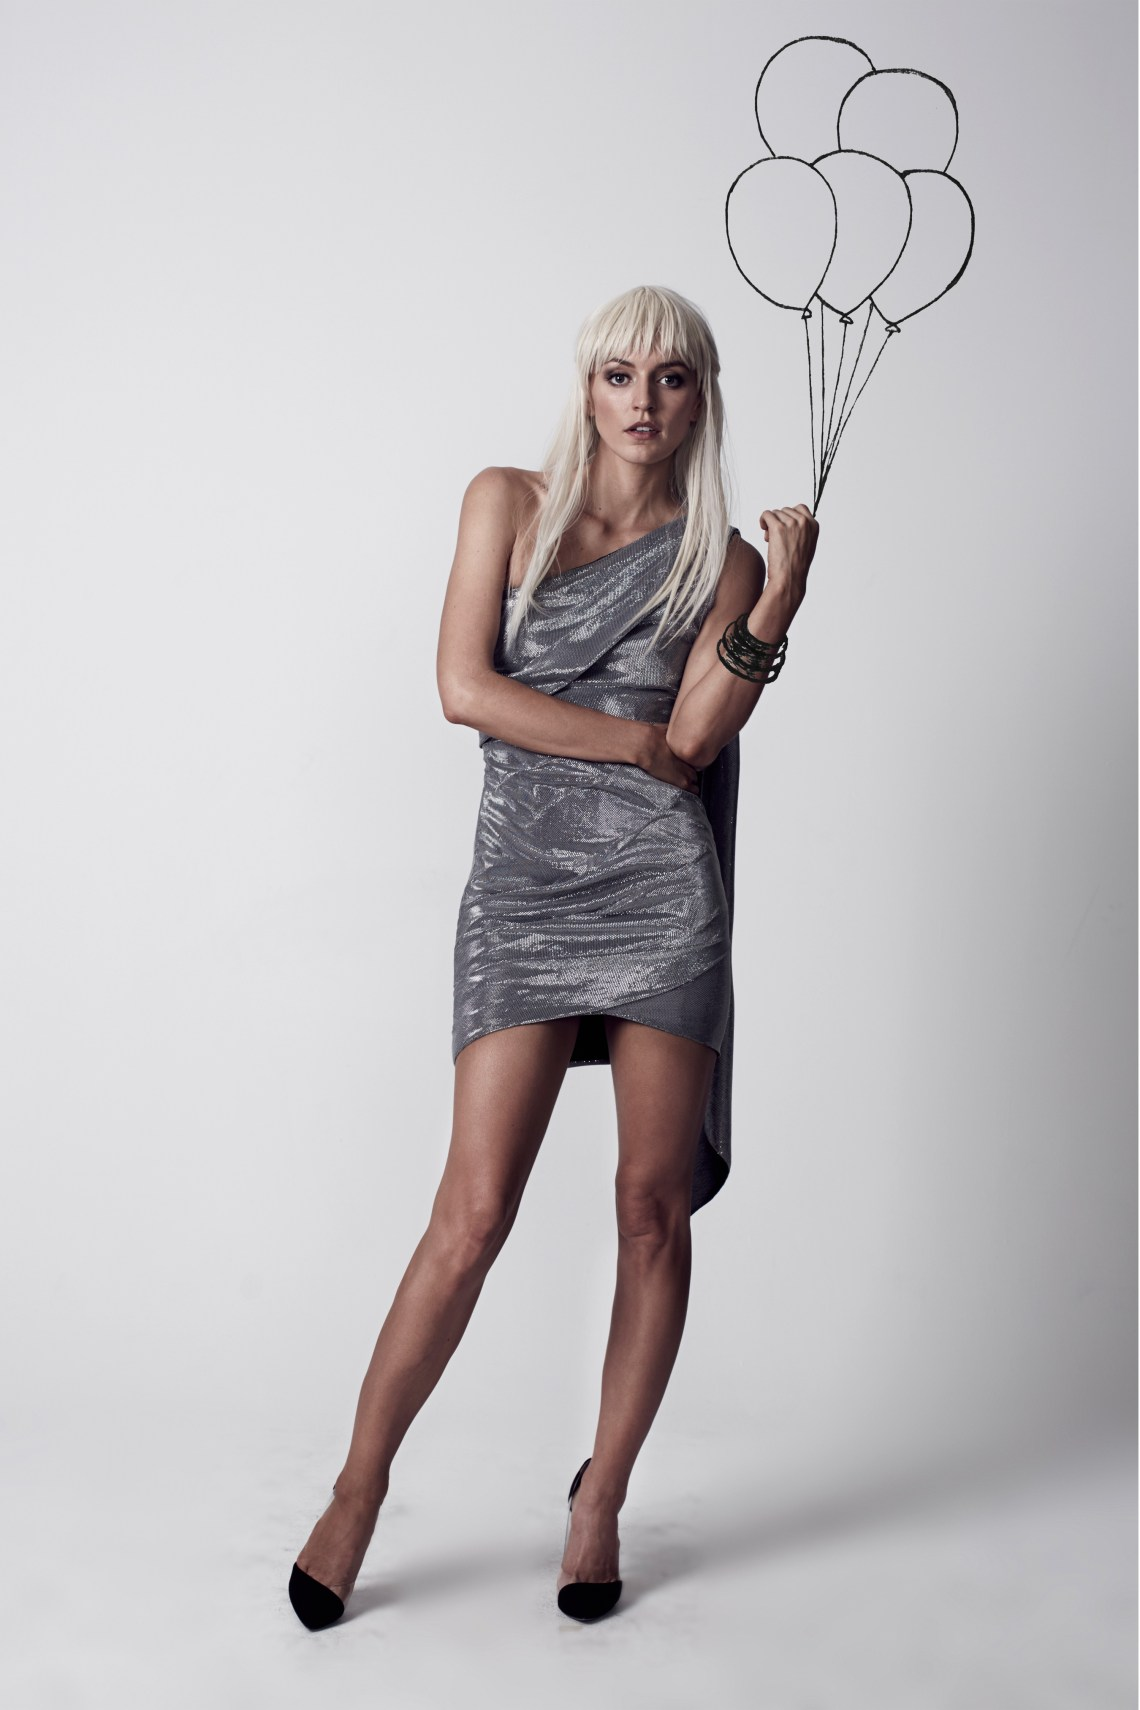 Luci-Taff-Silver-Dress-Wicked-Game-Ballons